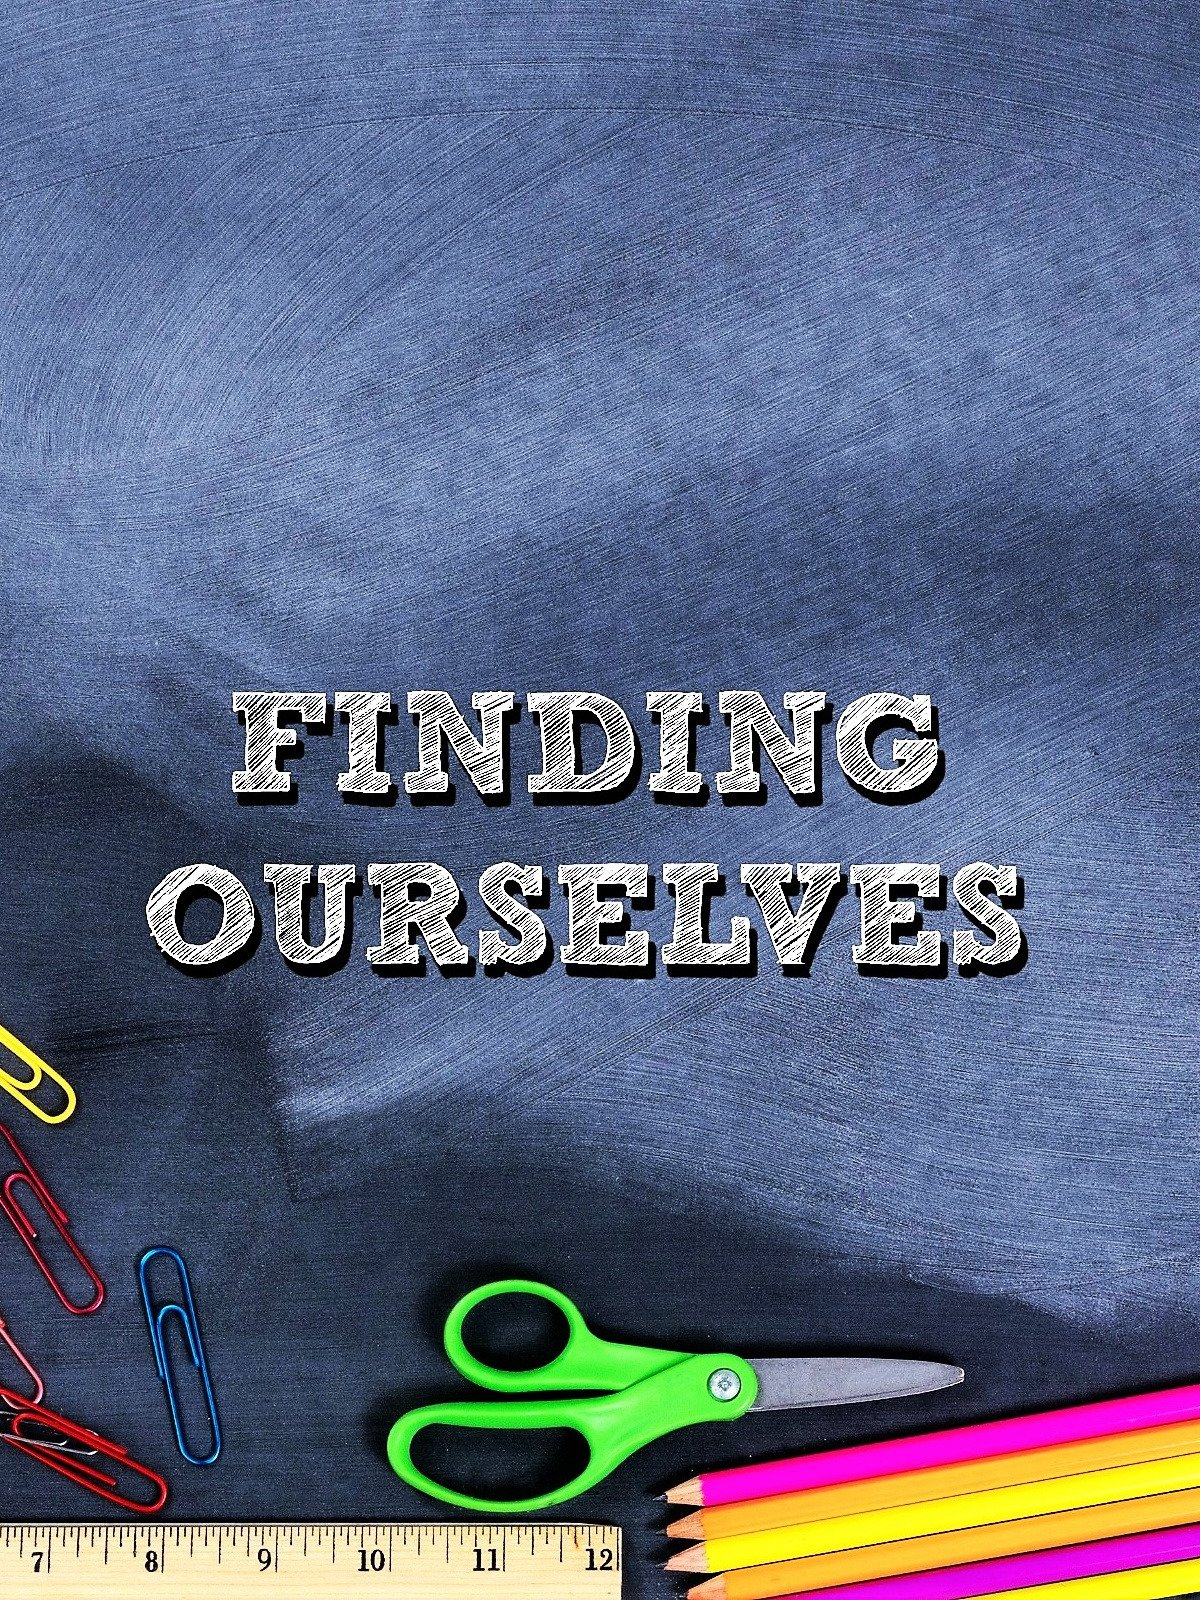 Clip: Finding Ourselves